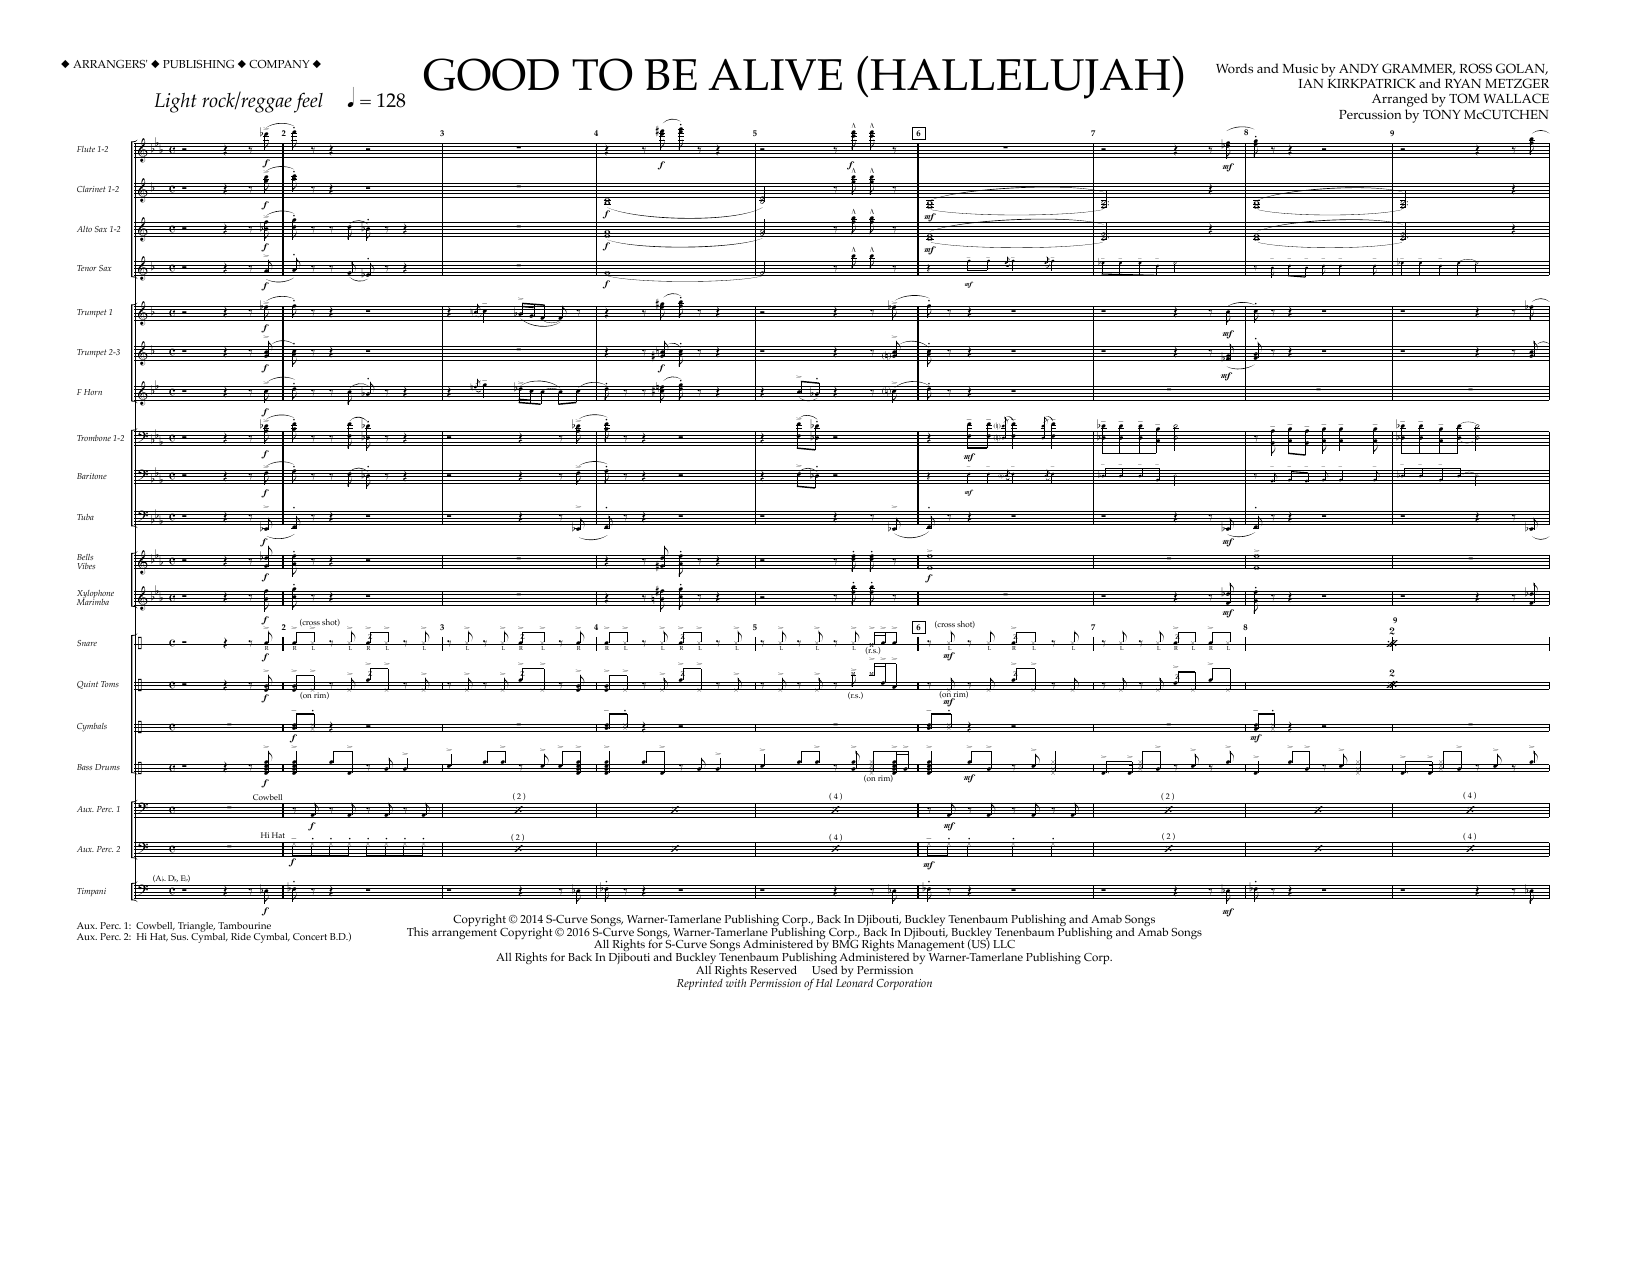 Good to Be Alive (Hallelujah) - Full Score Sheet Music